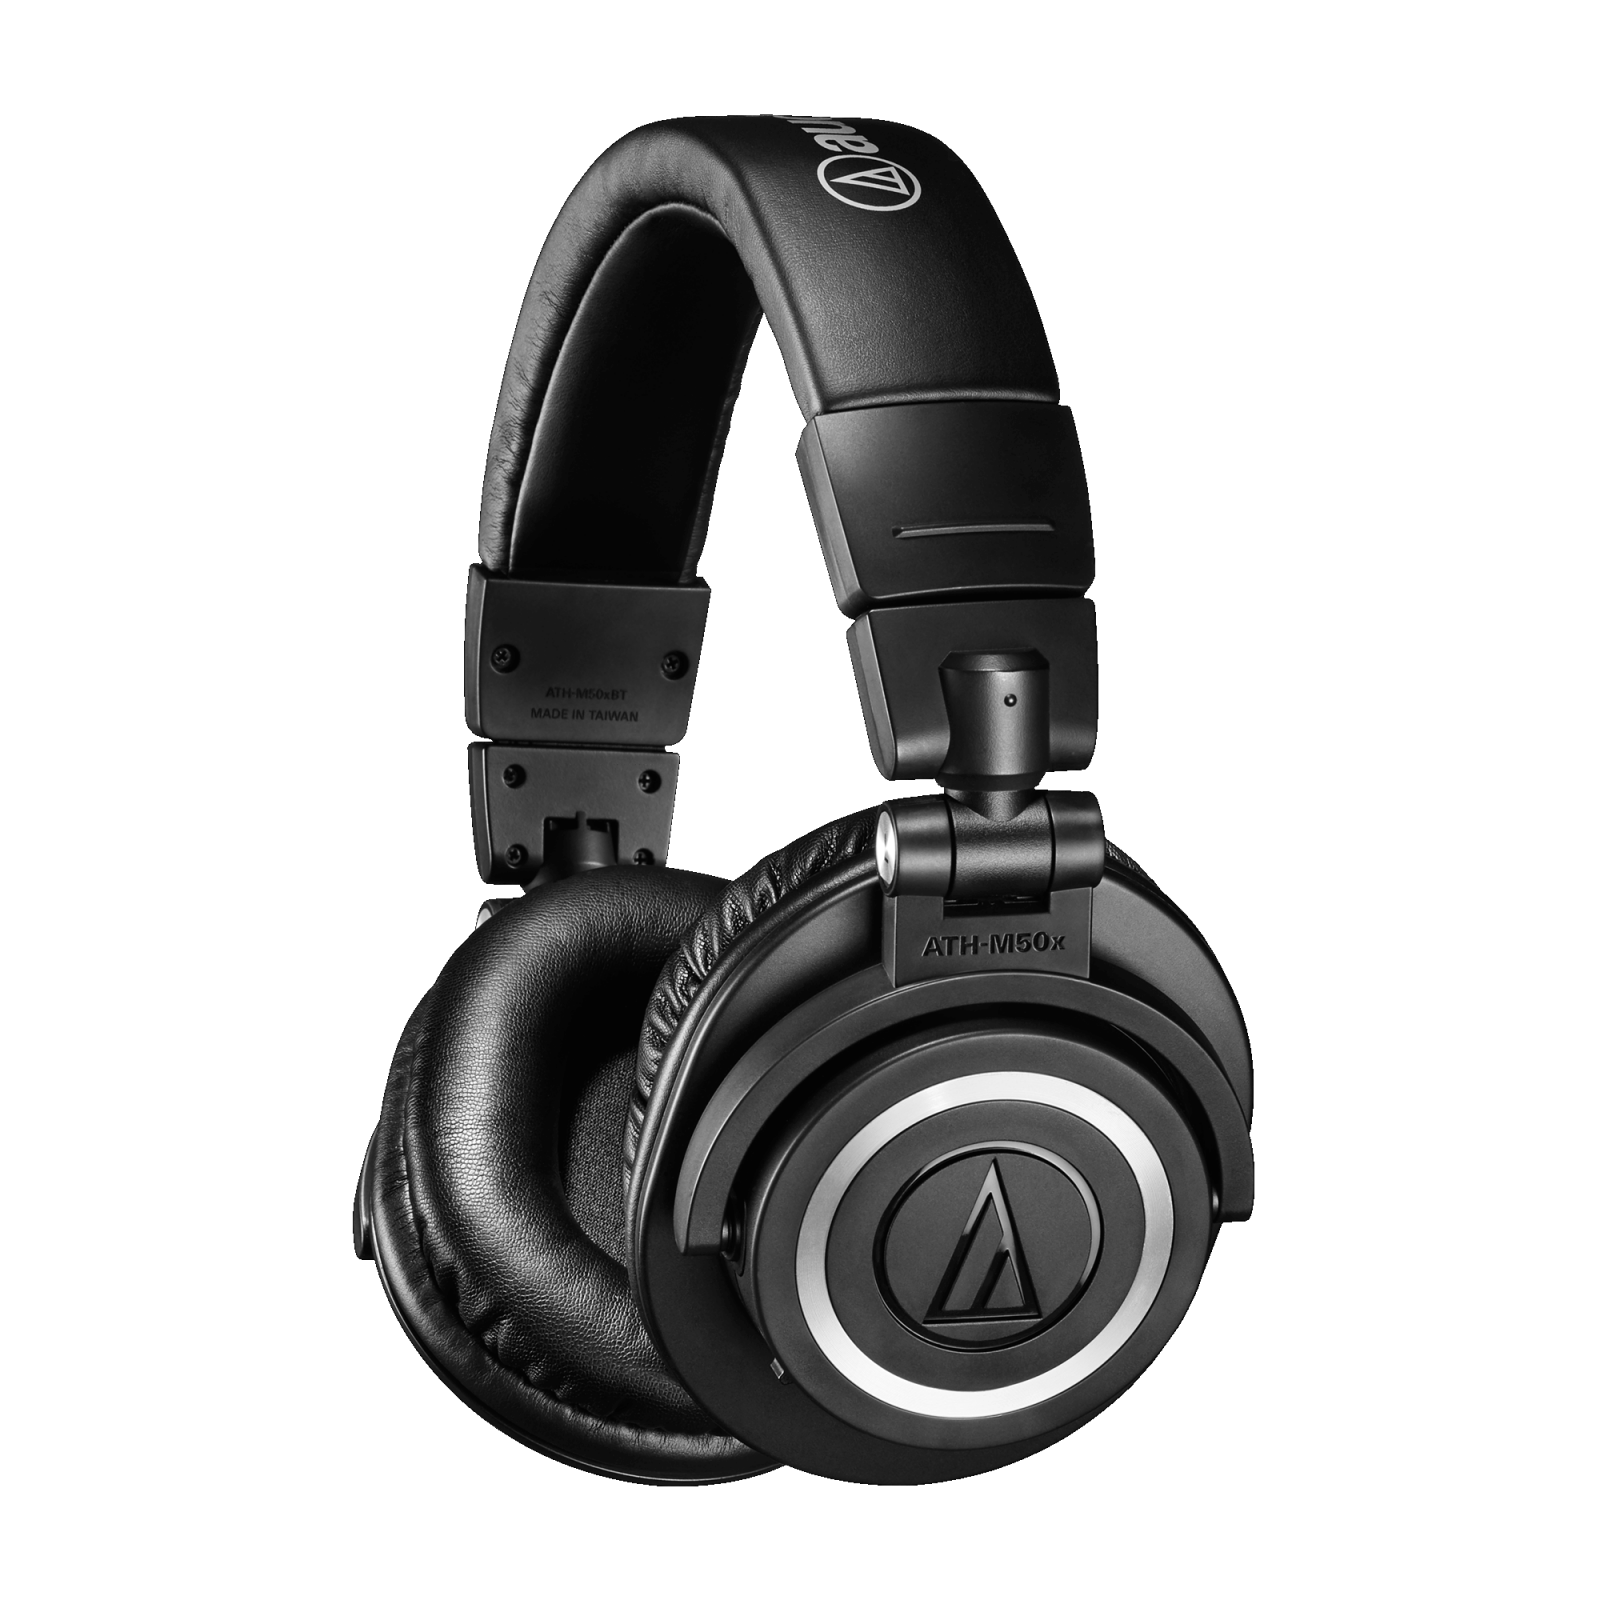 Audio Technica ATH-M50xBT Professional Monitor Headphones